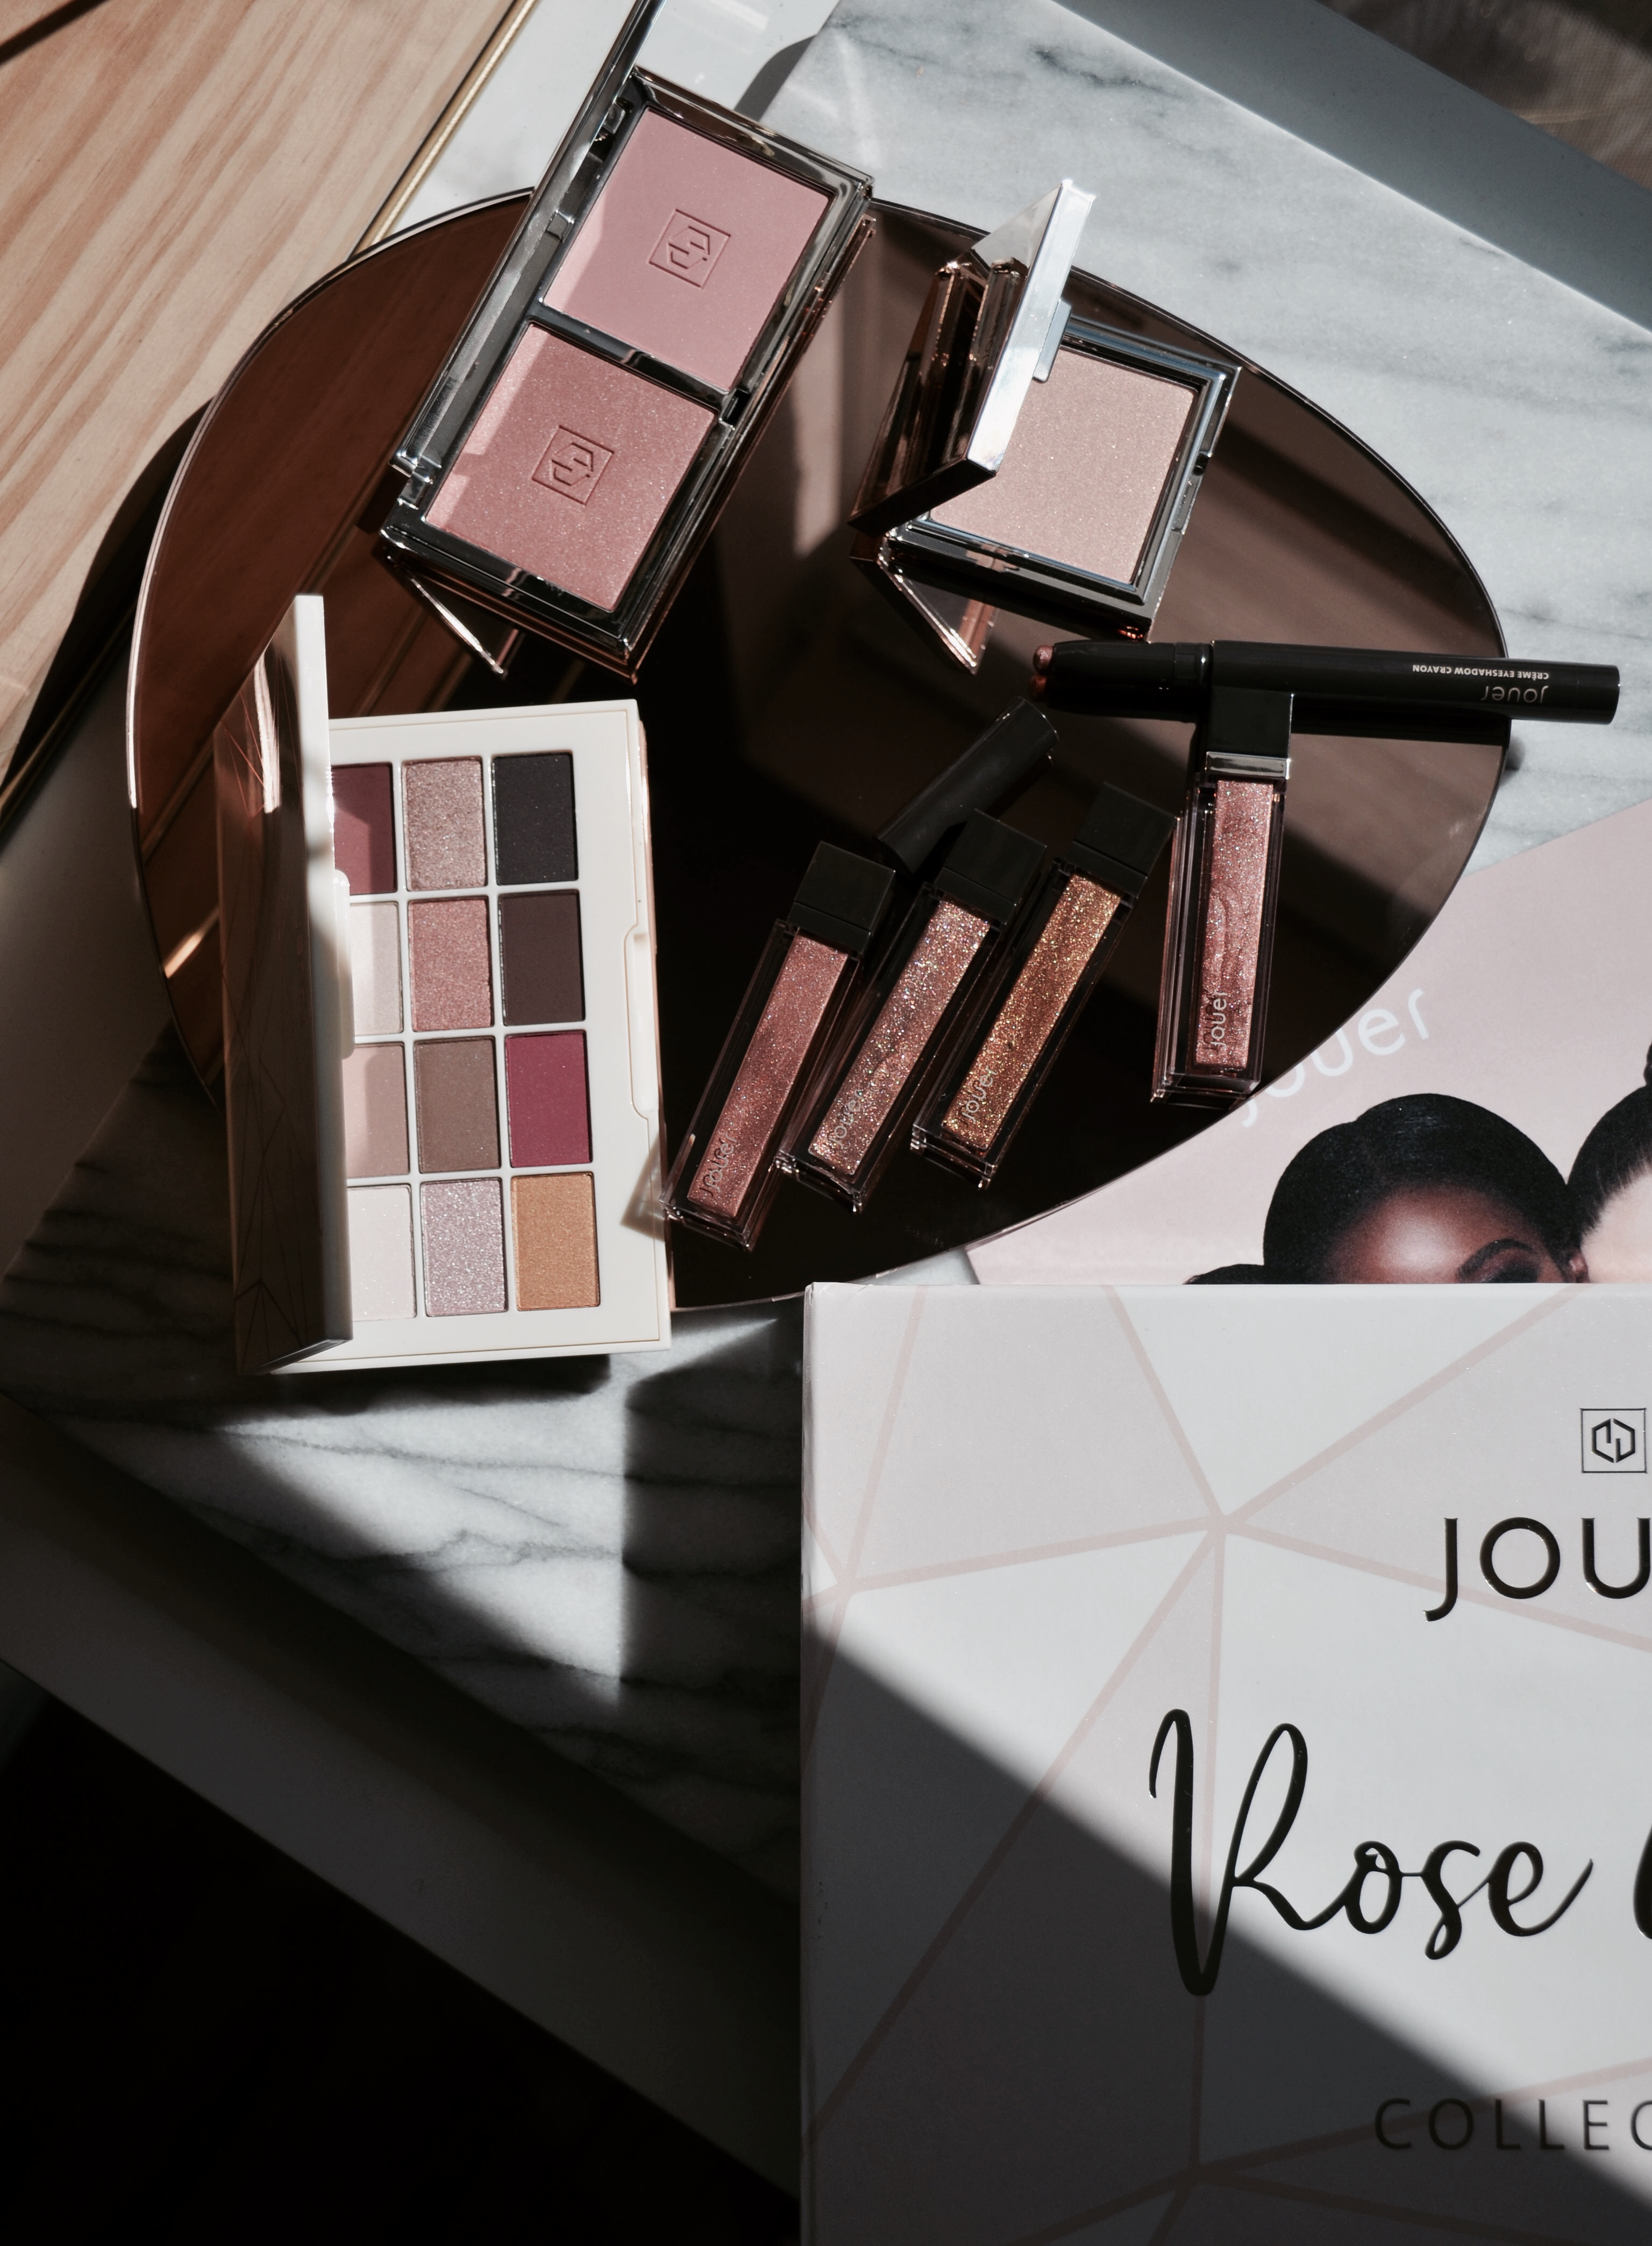 Jouer Rose Gold Collection Review & Swatches